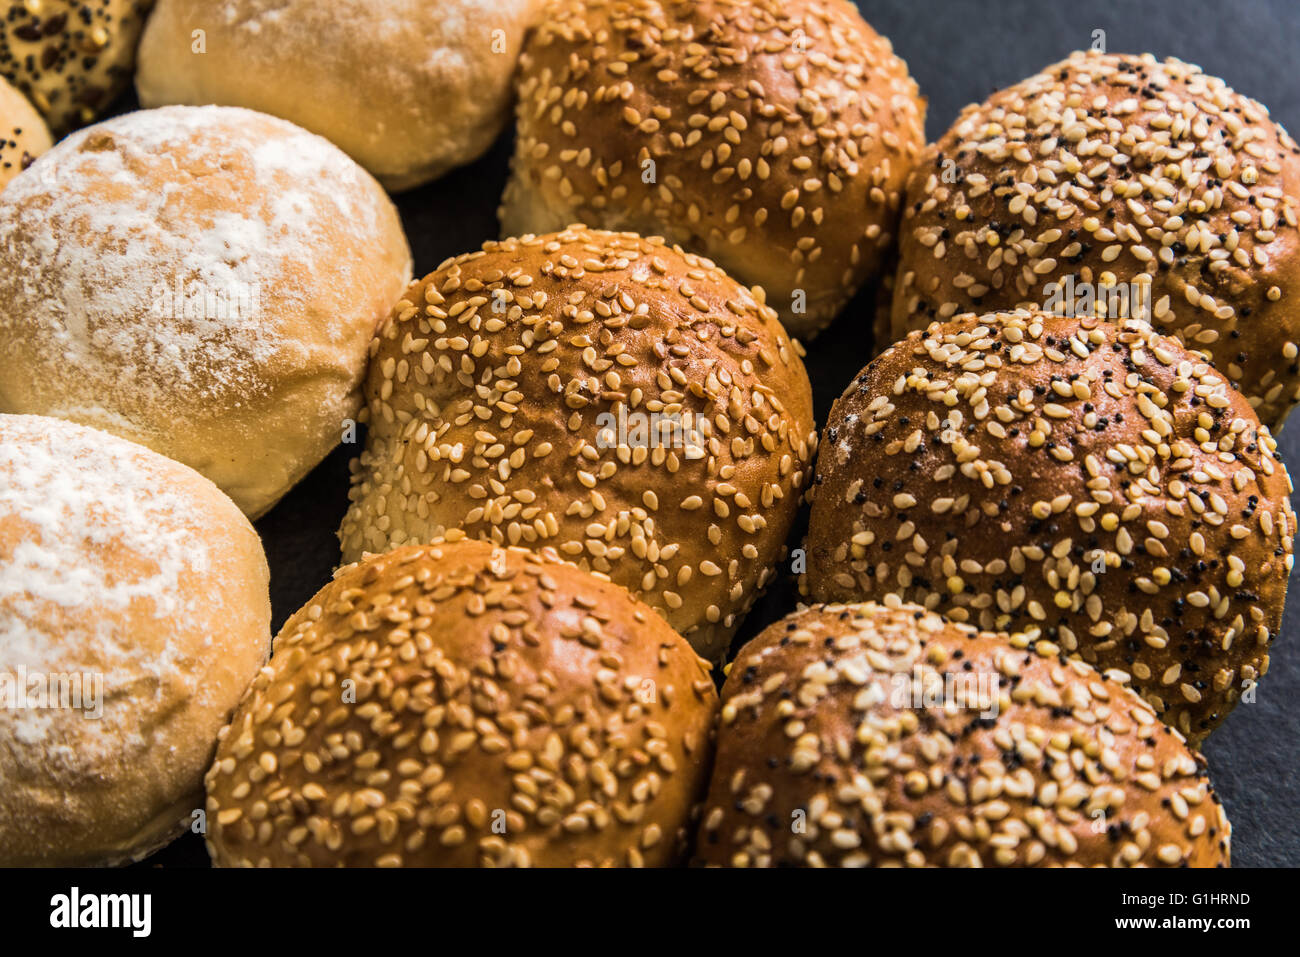 Artisan bakery buns and rolls on dark slate background from above - Stock Image